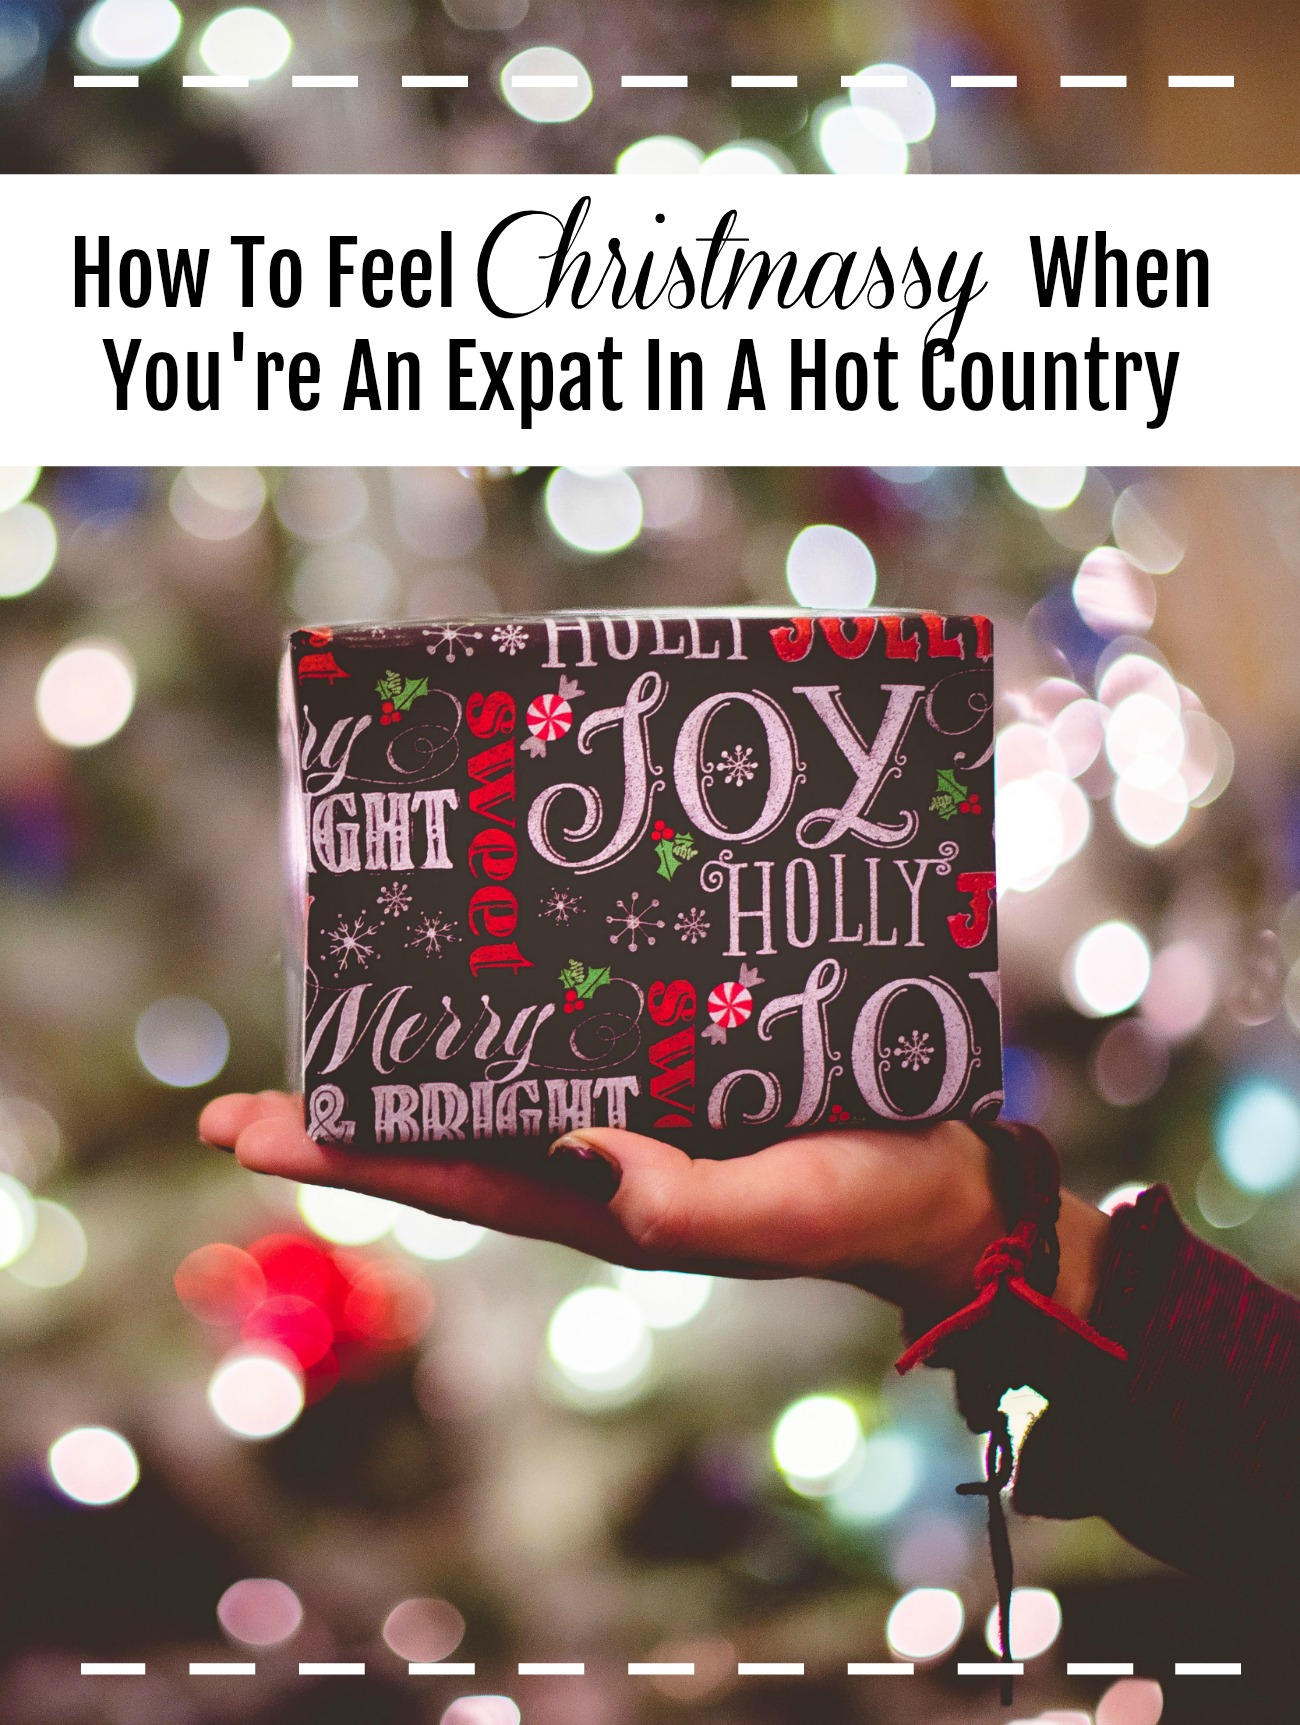 How To Feel Christmassy When You're An Expat In A Hot Country